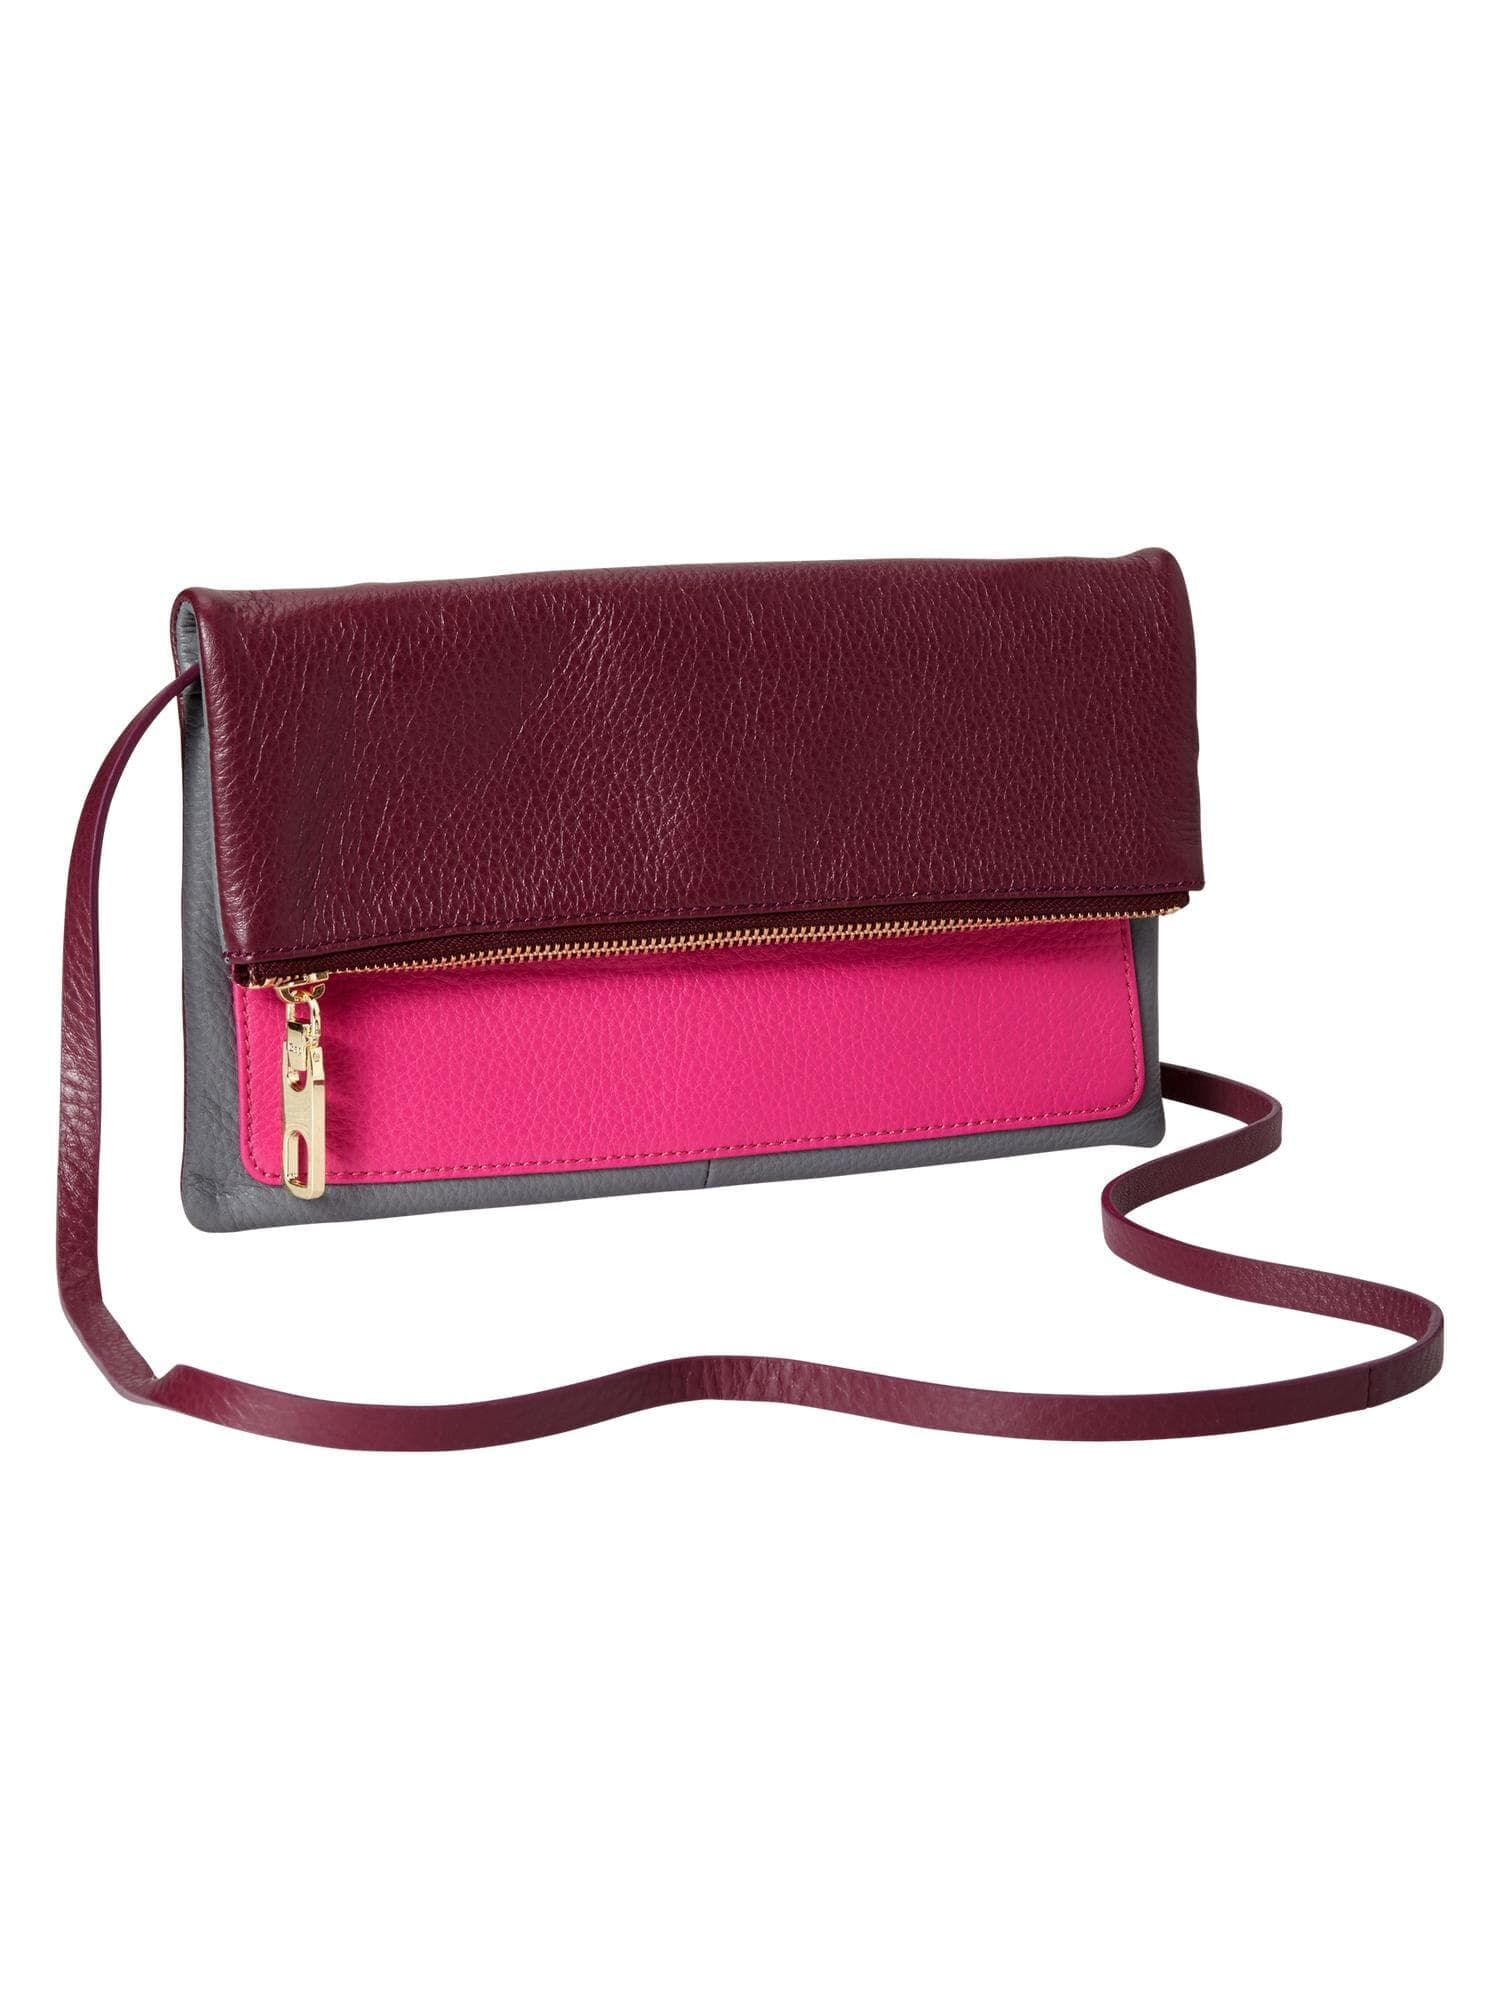 Colorblock leather crossbody bag  6a8b0d1fc090